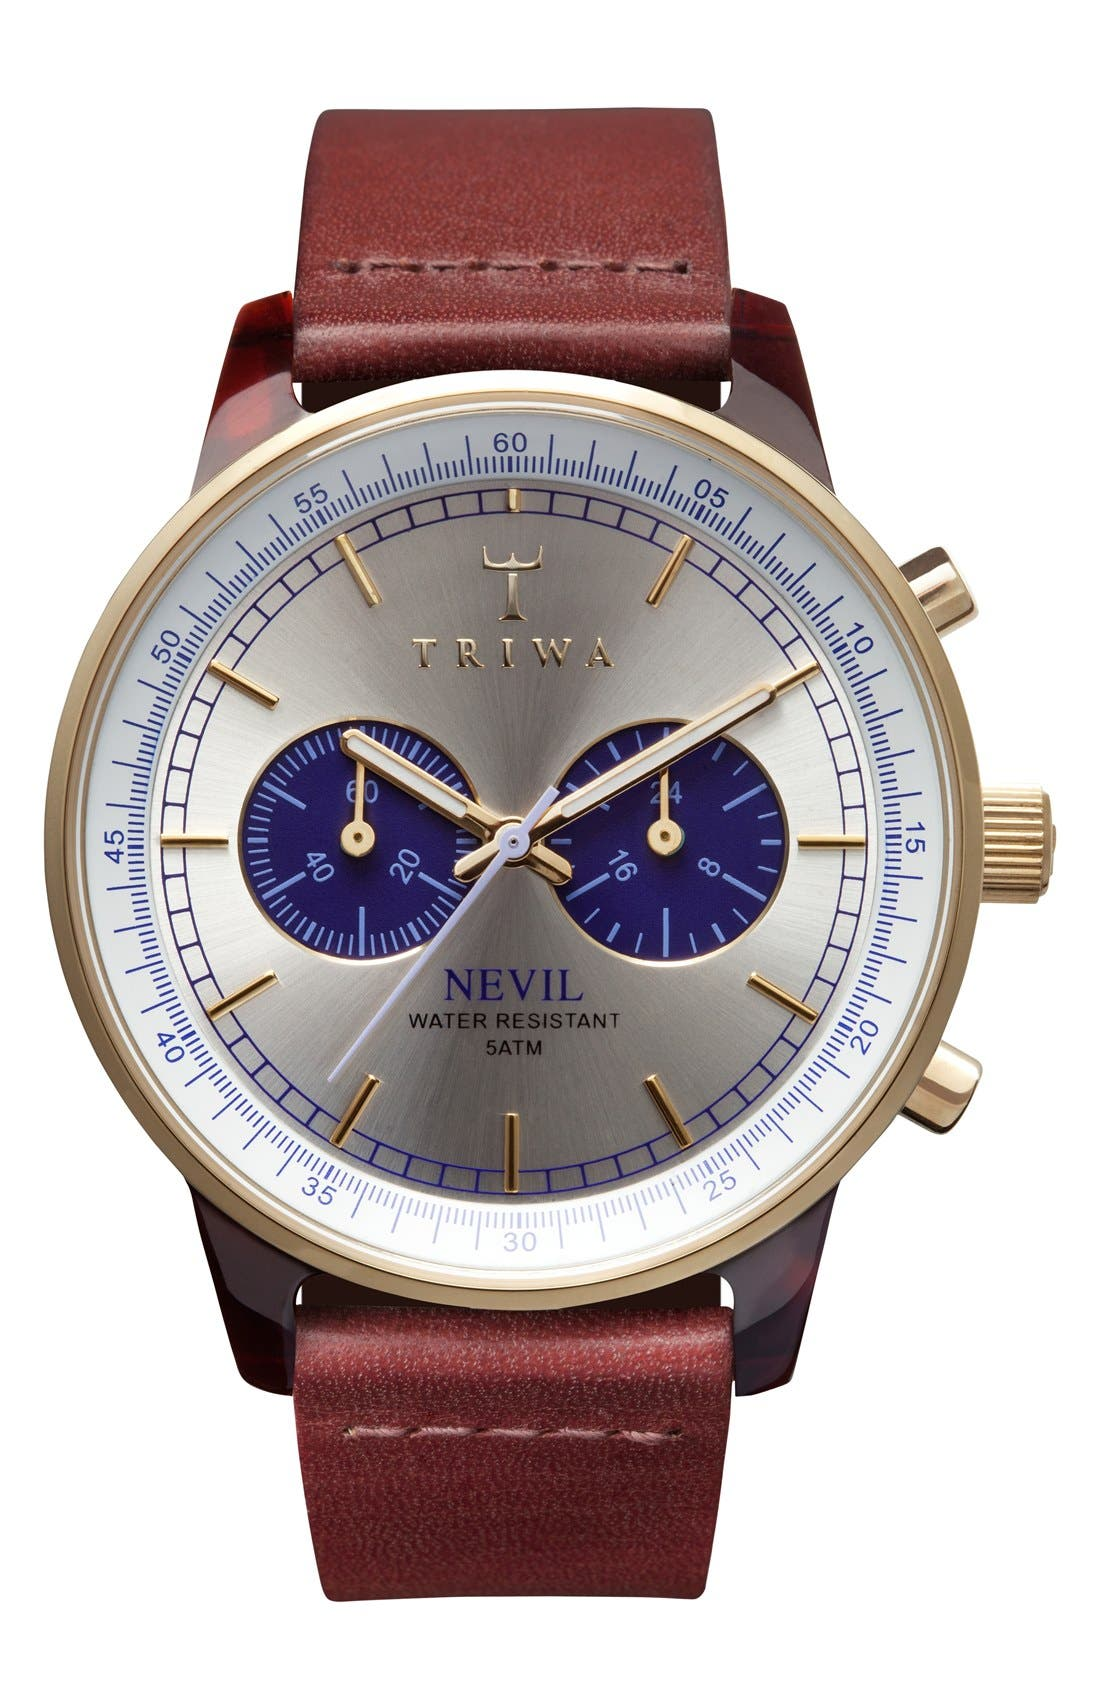 Main Image - Triwa 'Nevil' Chronograph Leather Strap Watch, 38mm